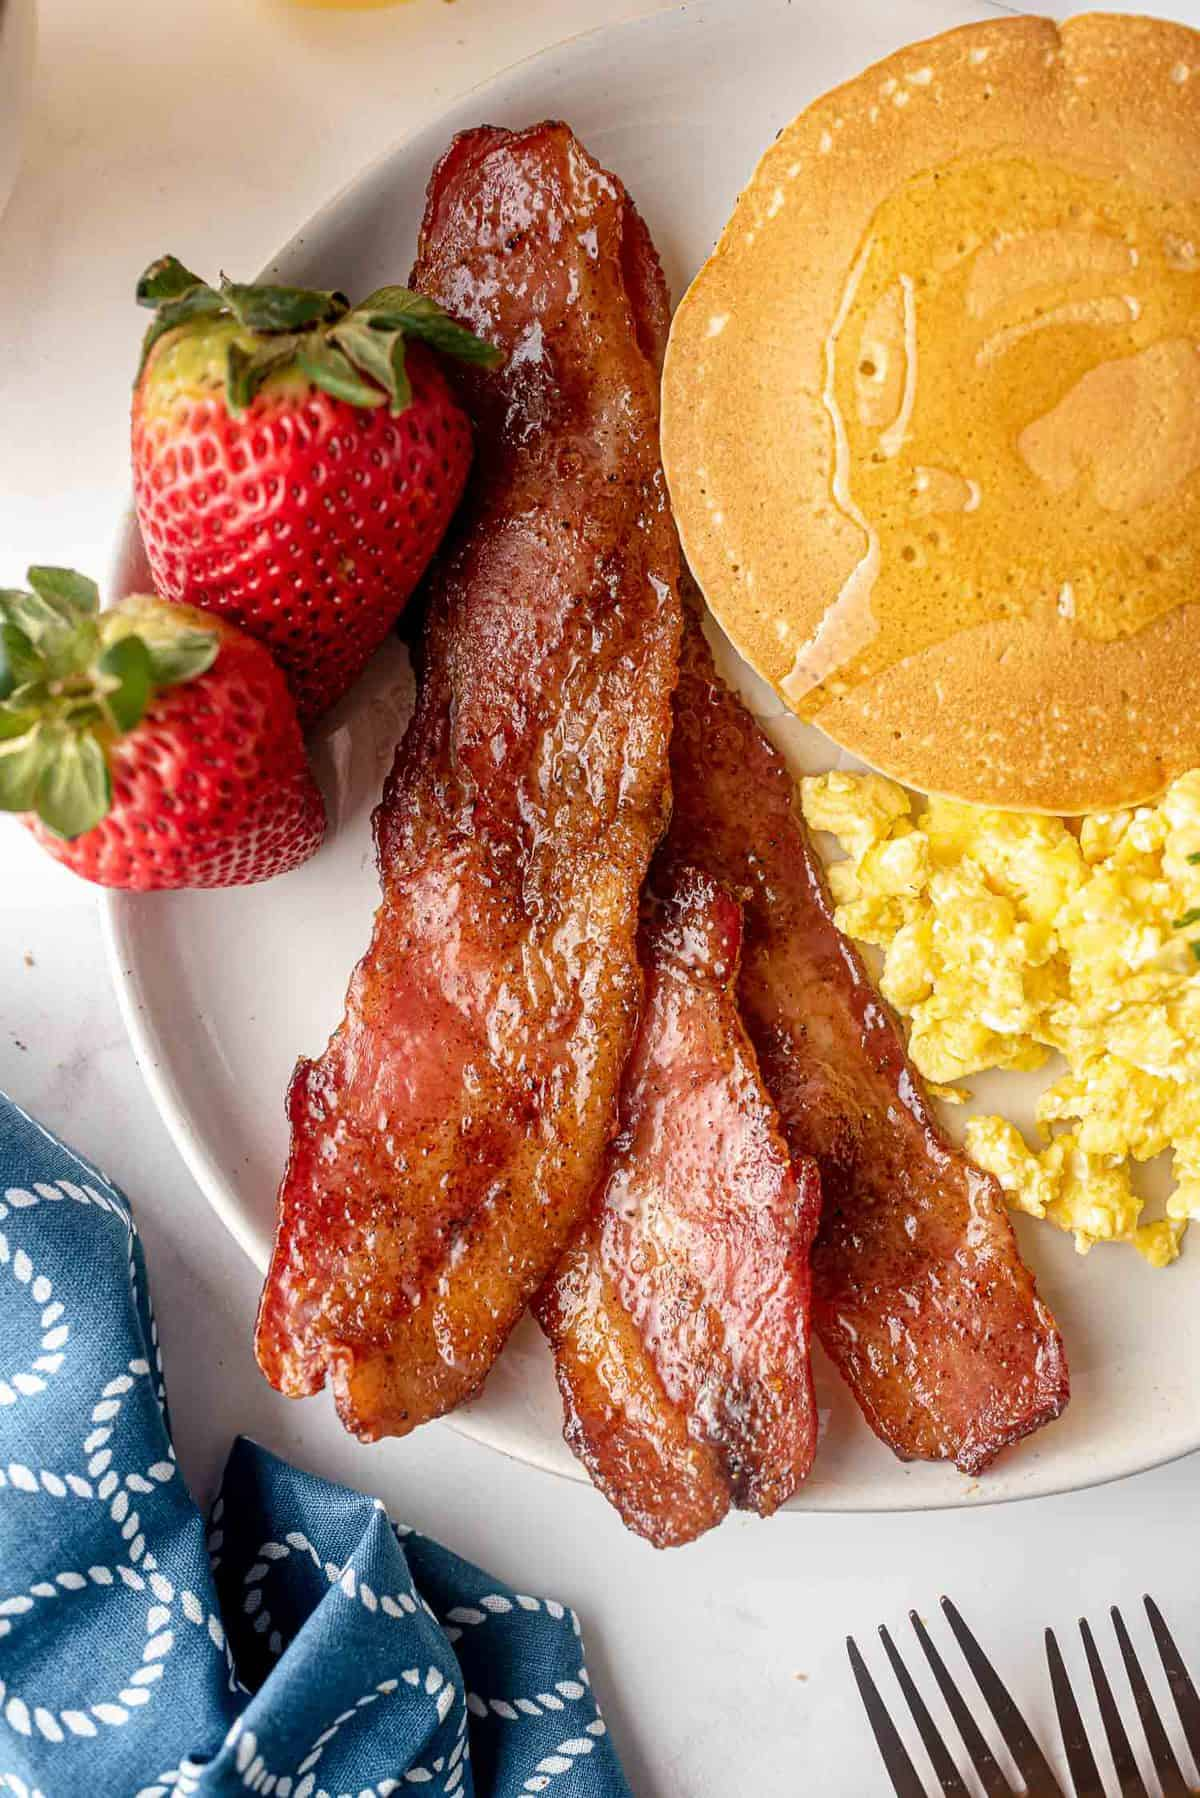 Bacon on a plate with pancakes, eggs, and strawberries.